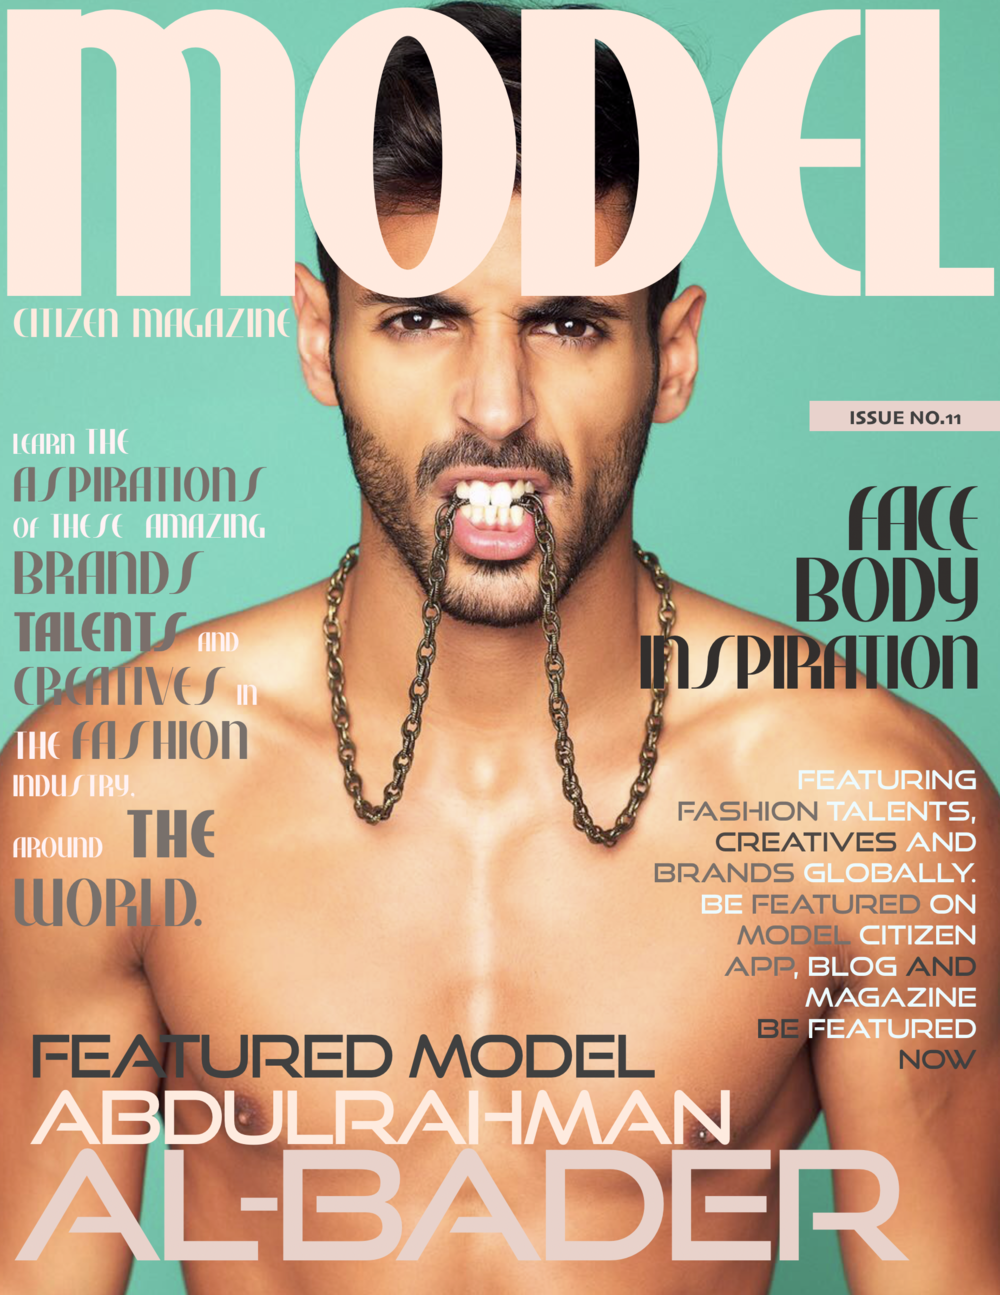 Abdulrahman Al-Bader, Model Citizen Magazine